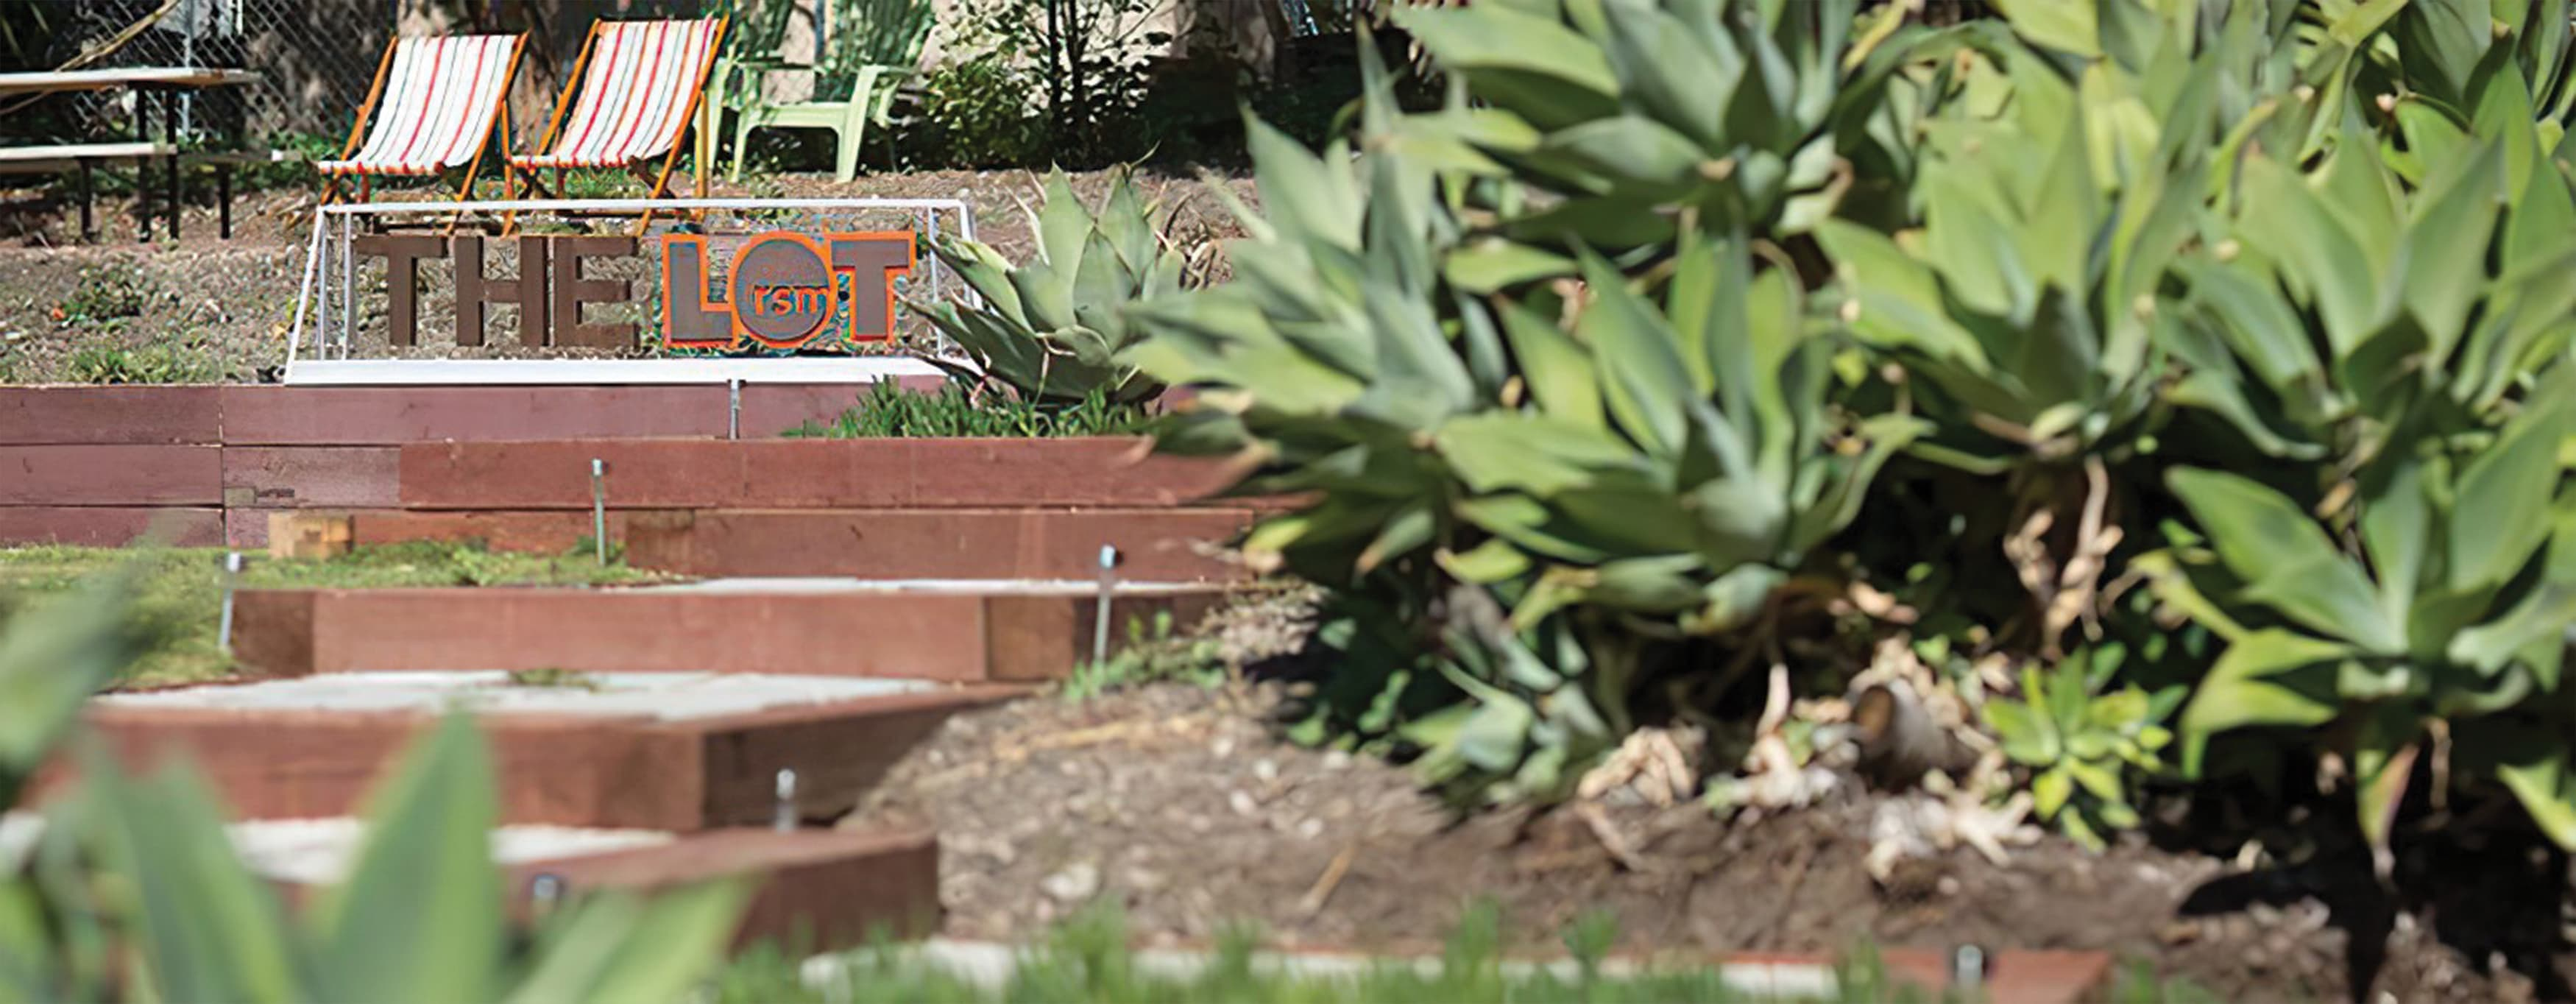 An outdoor space featuring a fabricated sign, seating, and succulent vegetation.